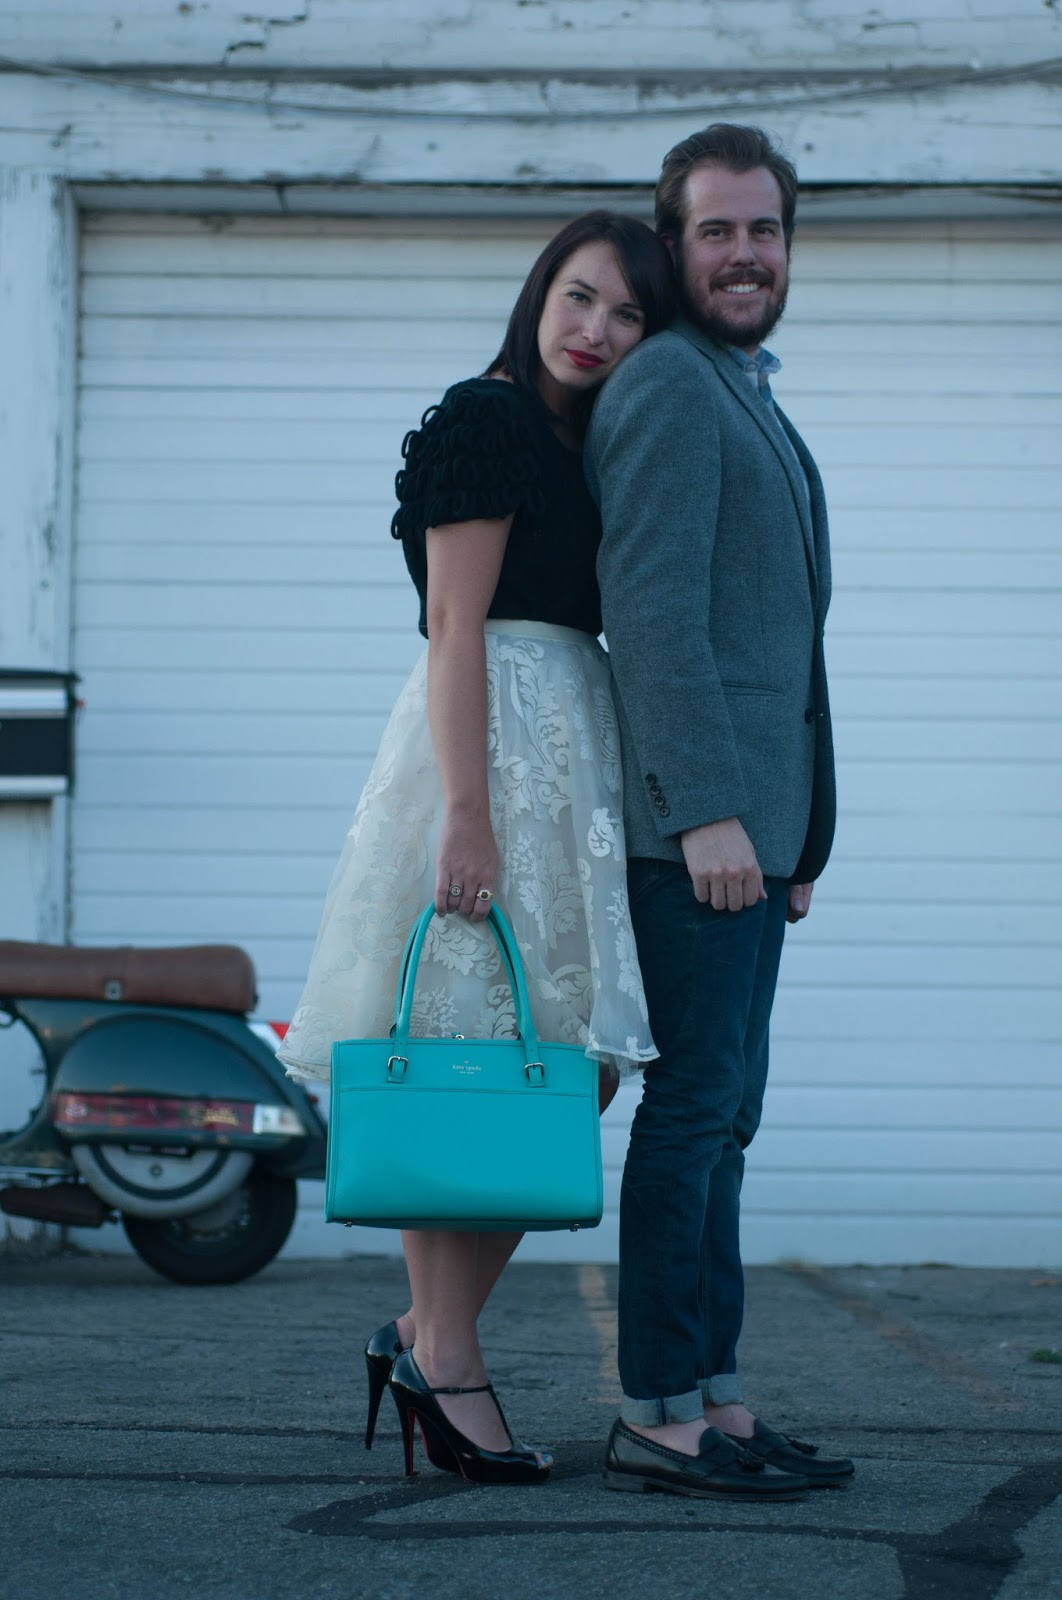 couples fashion, couples style, anthropologie ootd, kate spade handbag, wiw, kelsey bang